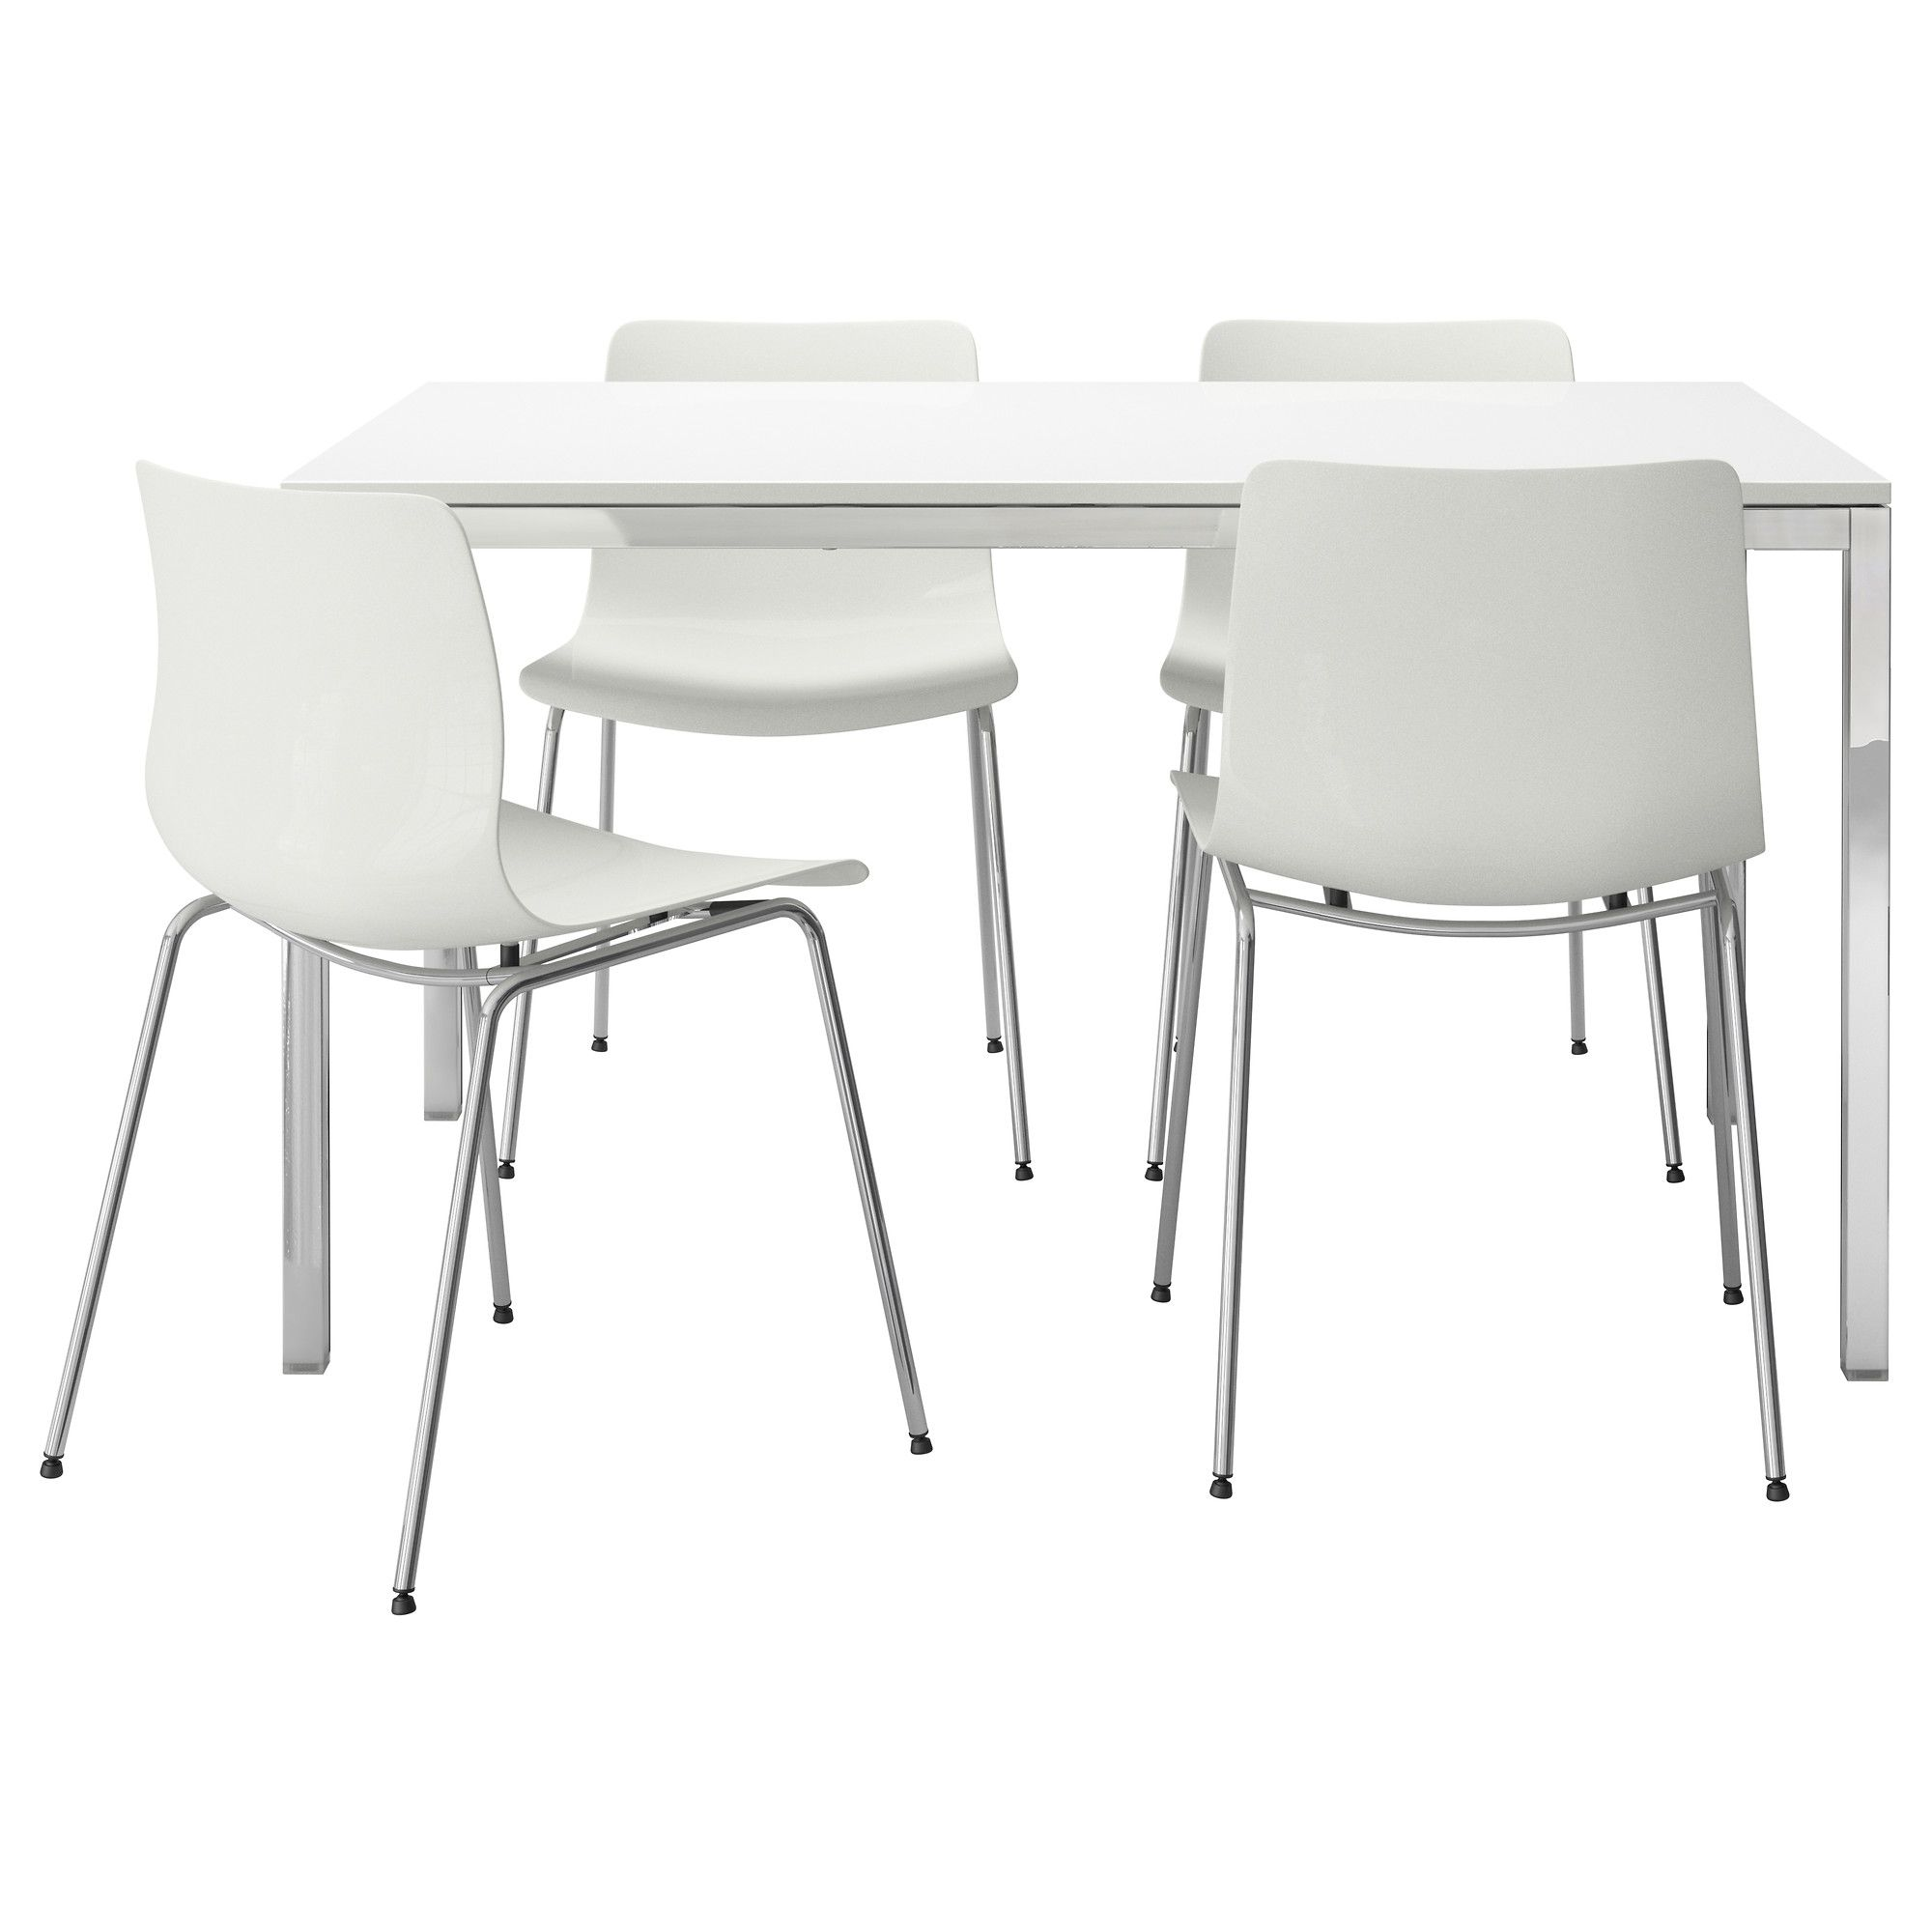 TORSBY/ERLAND Table And 4 Chairs